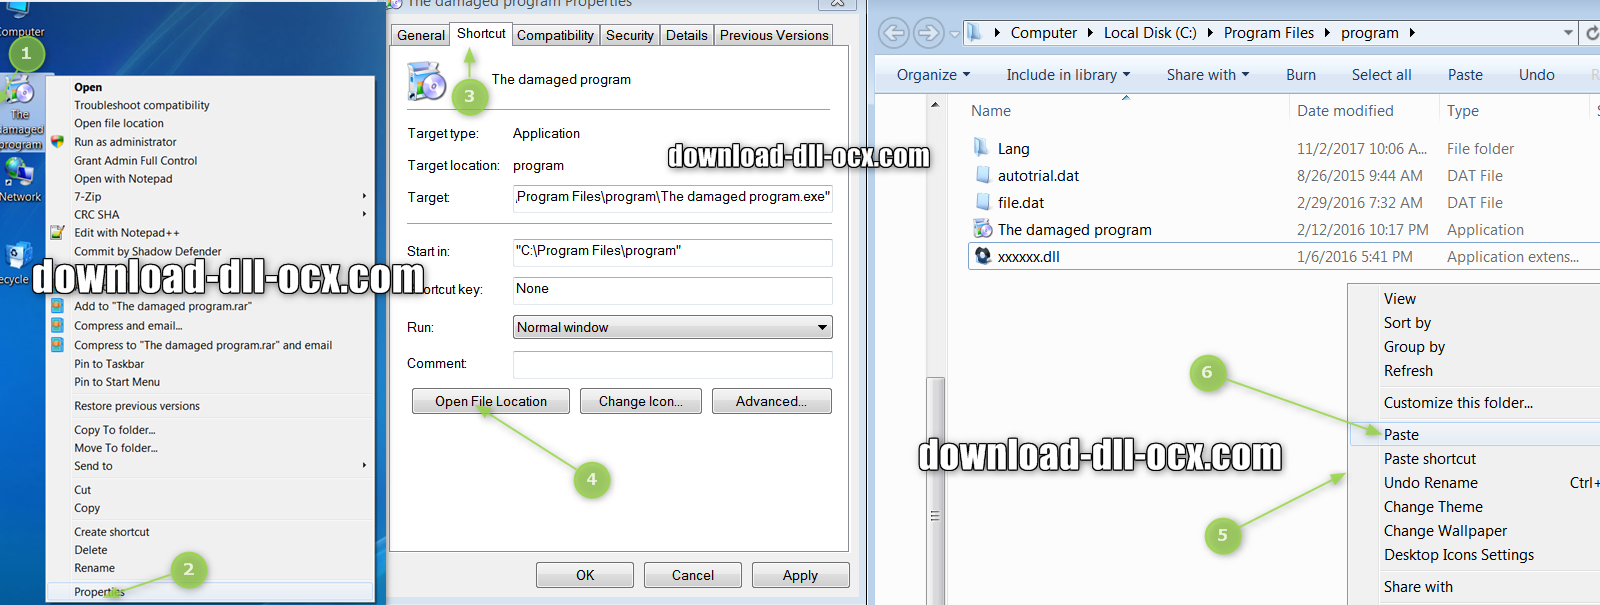 how to install Ipselpid.dll file? for fix missing